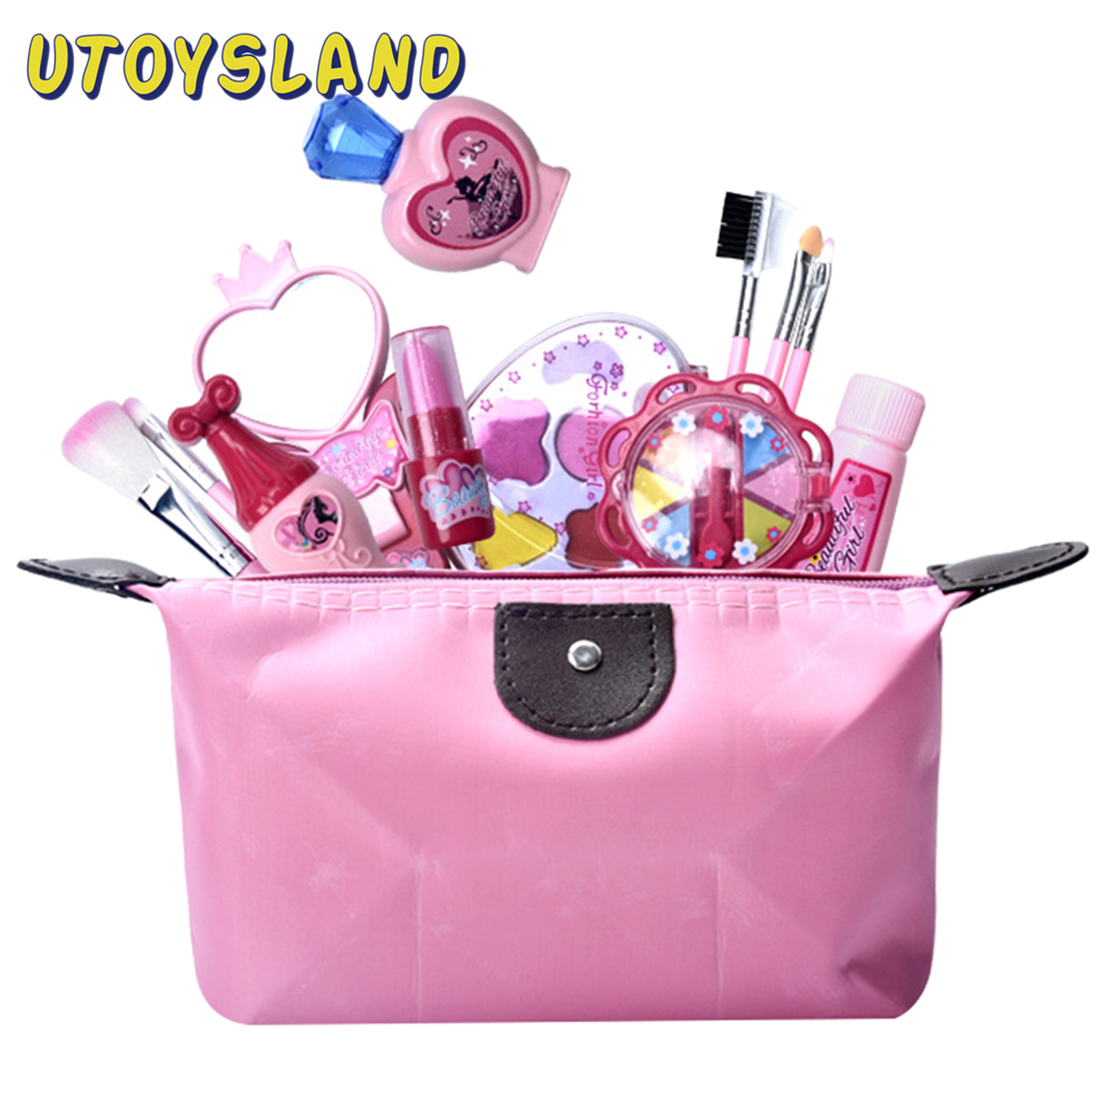 12pcs Girls Simulation Eye Shadow Makeup Kit Pretend Play Cosmetic Bag Role Play Classic Pretend Toys For Children - Pink Rosy